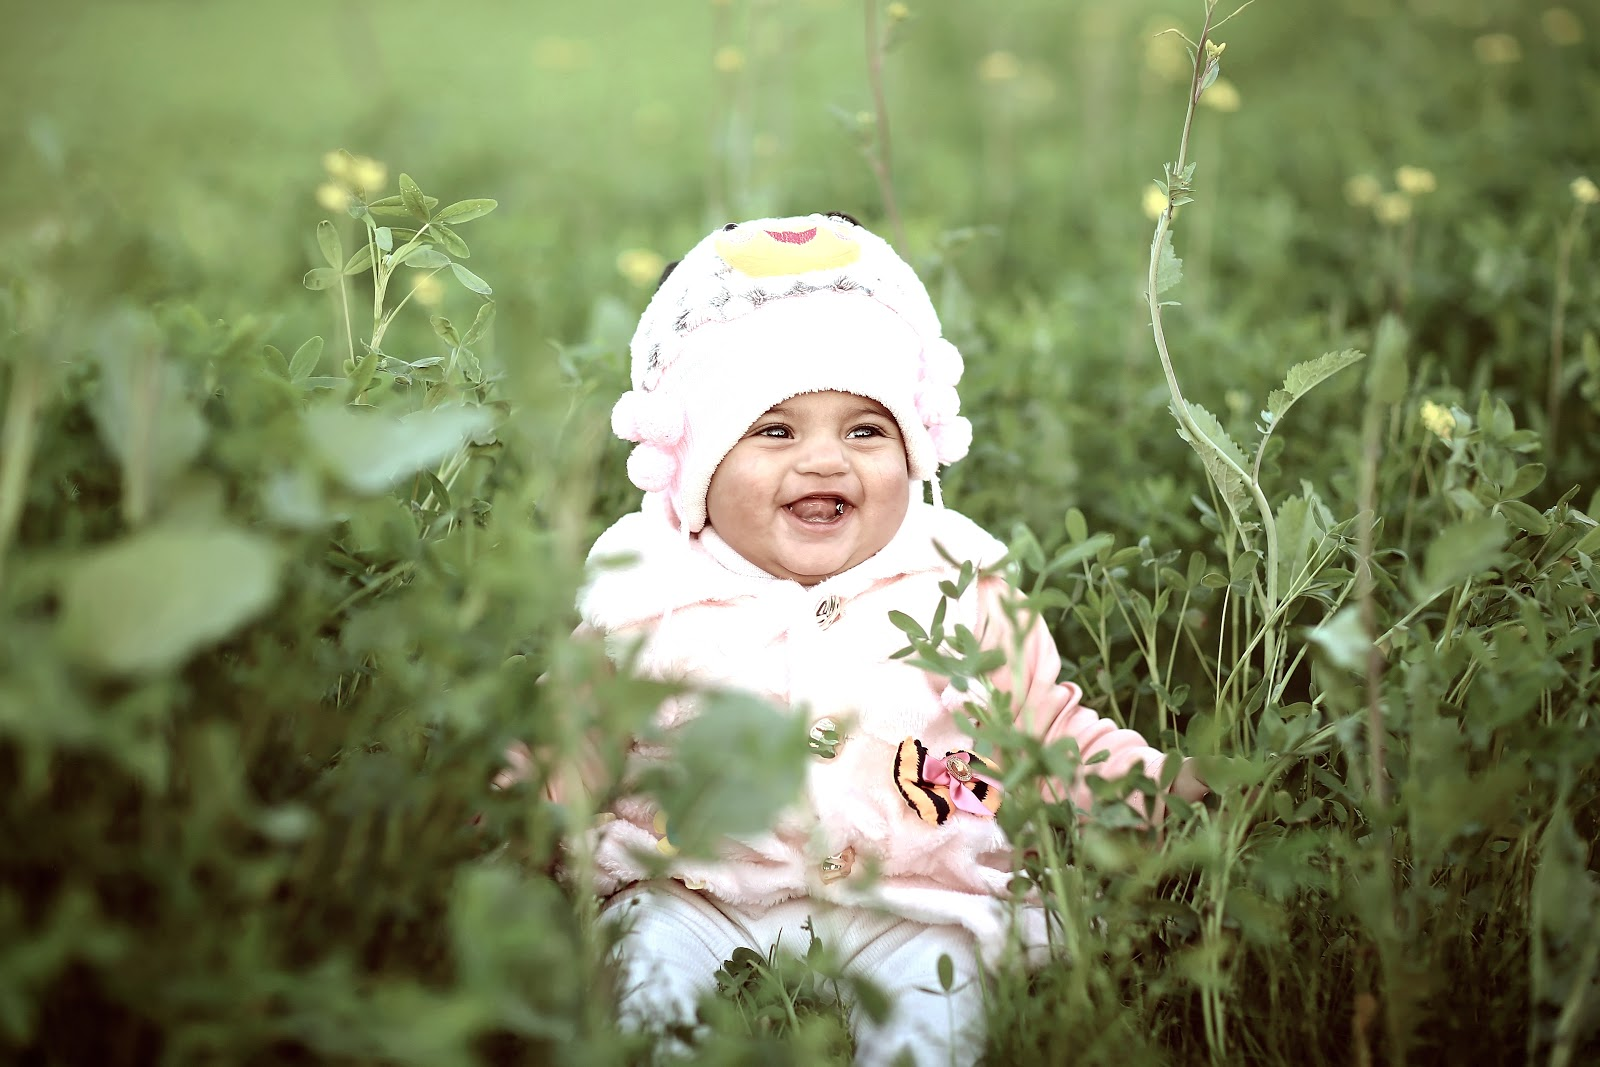 toddler-wearing-white-cap-on-green-field-images